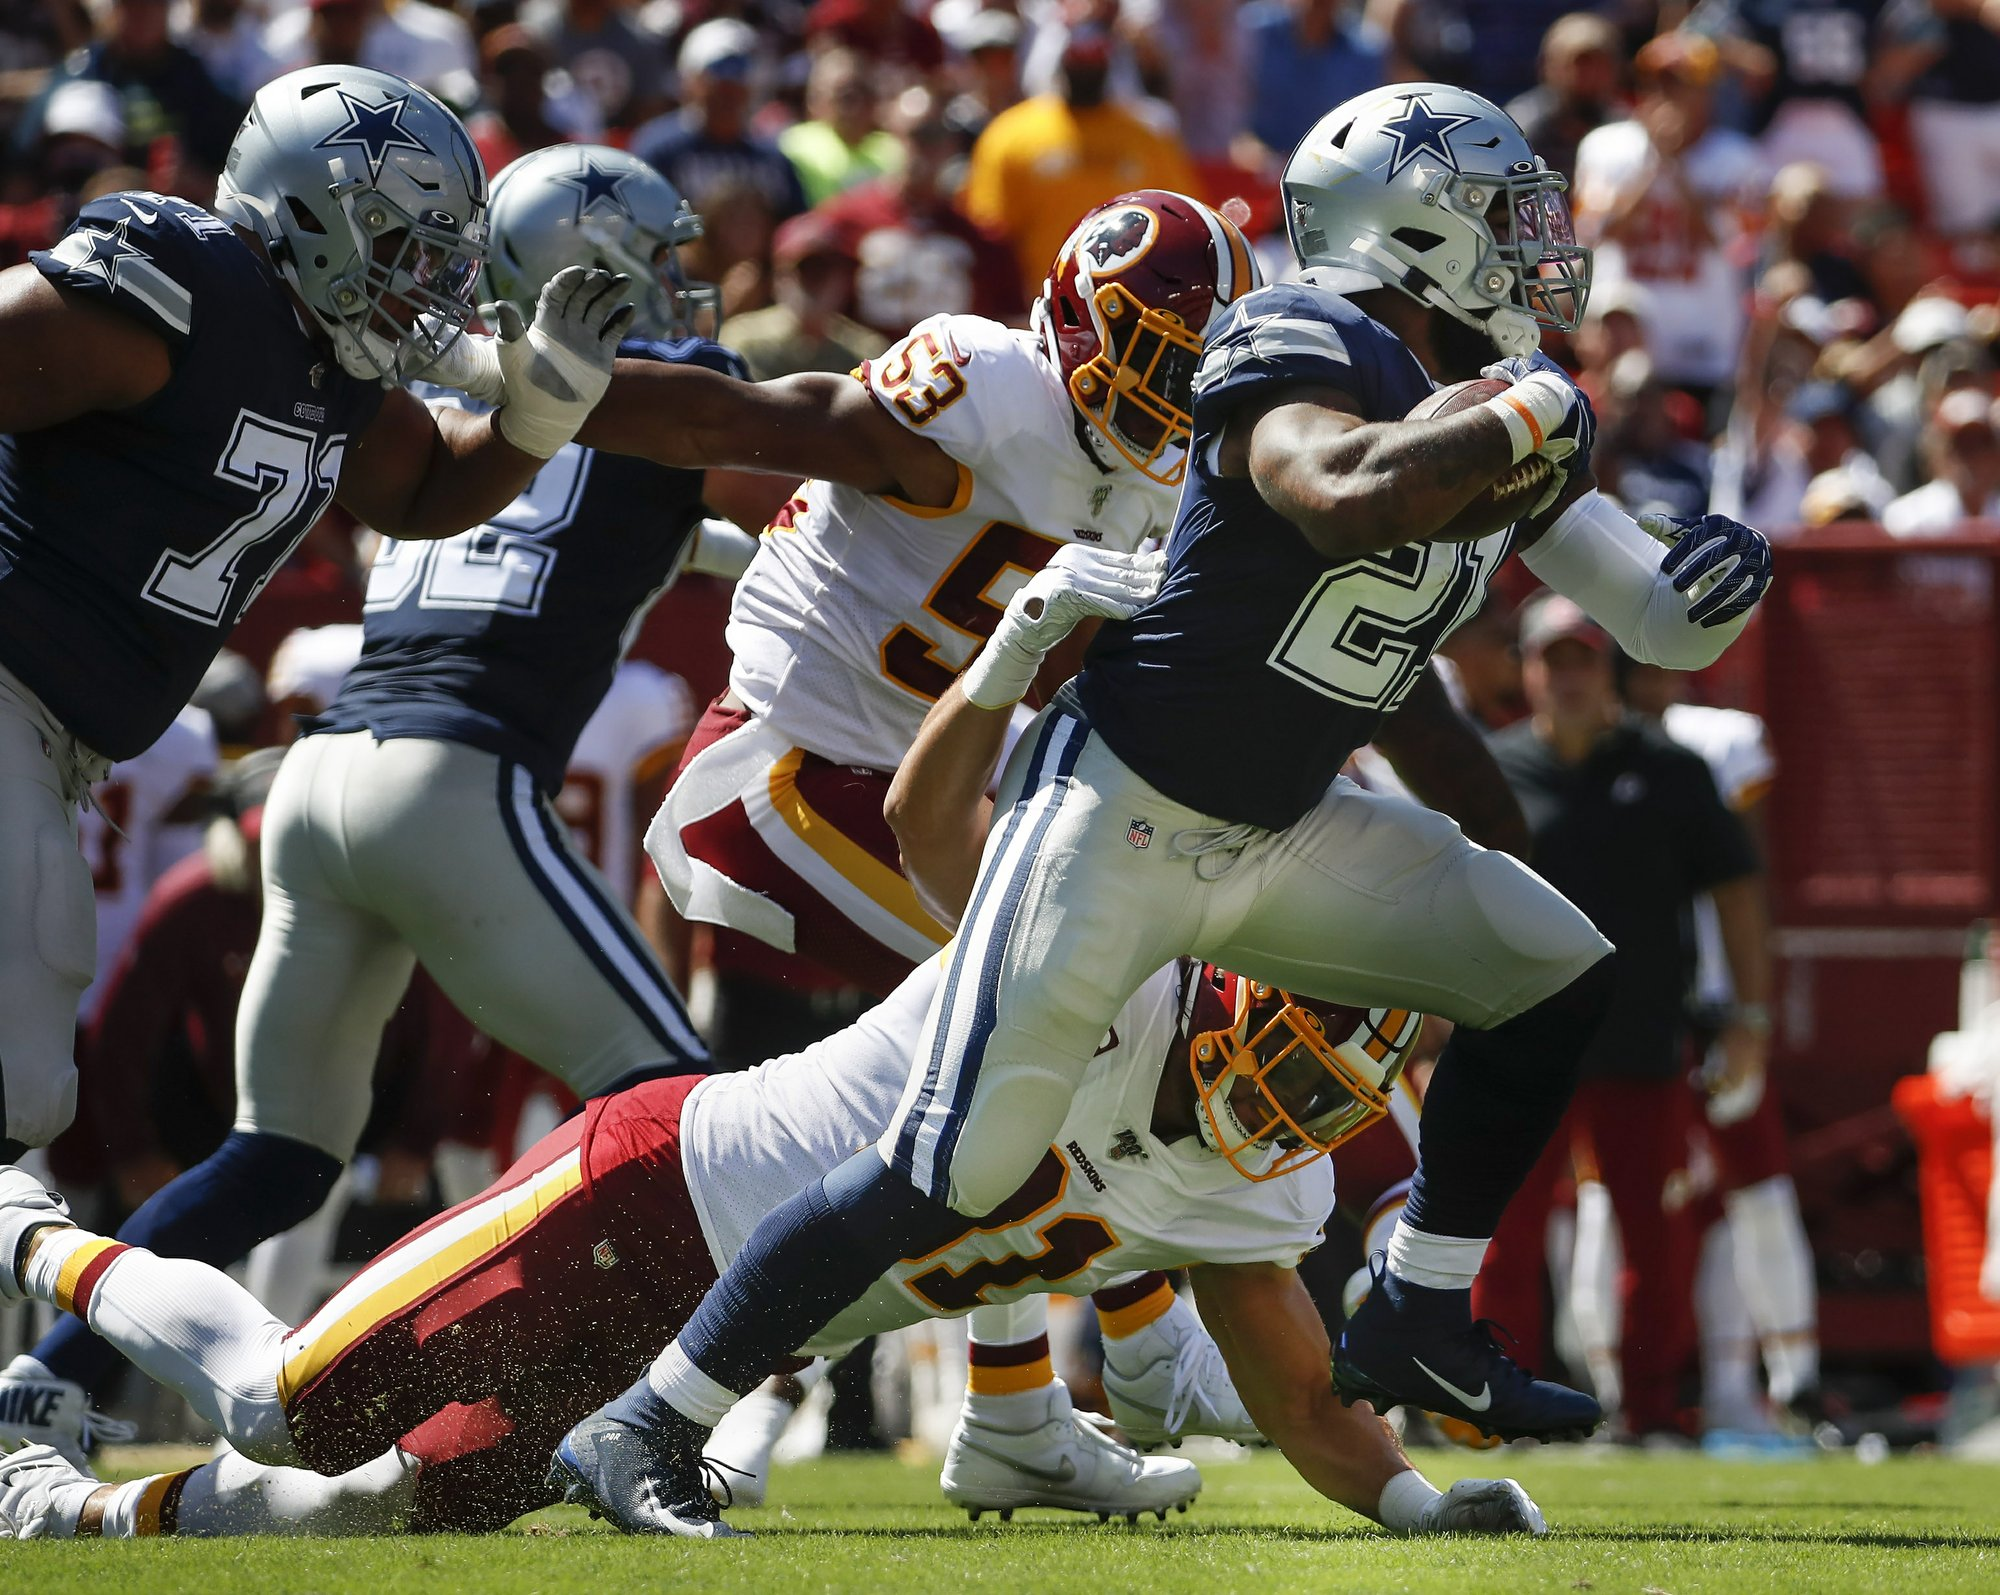 Redskins again undone by defense in loss to Cowboys